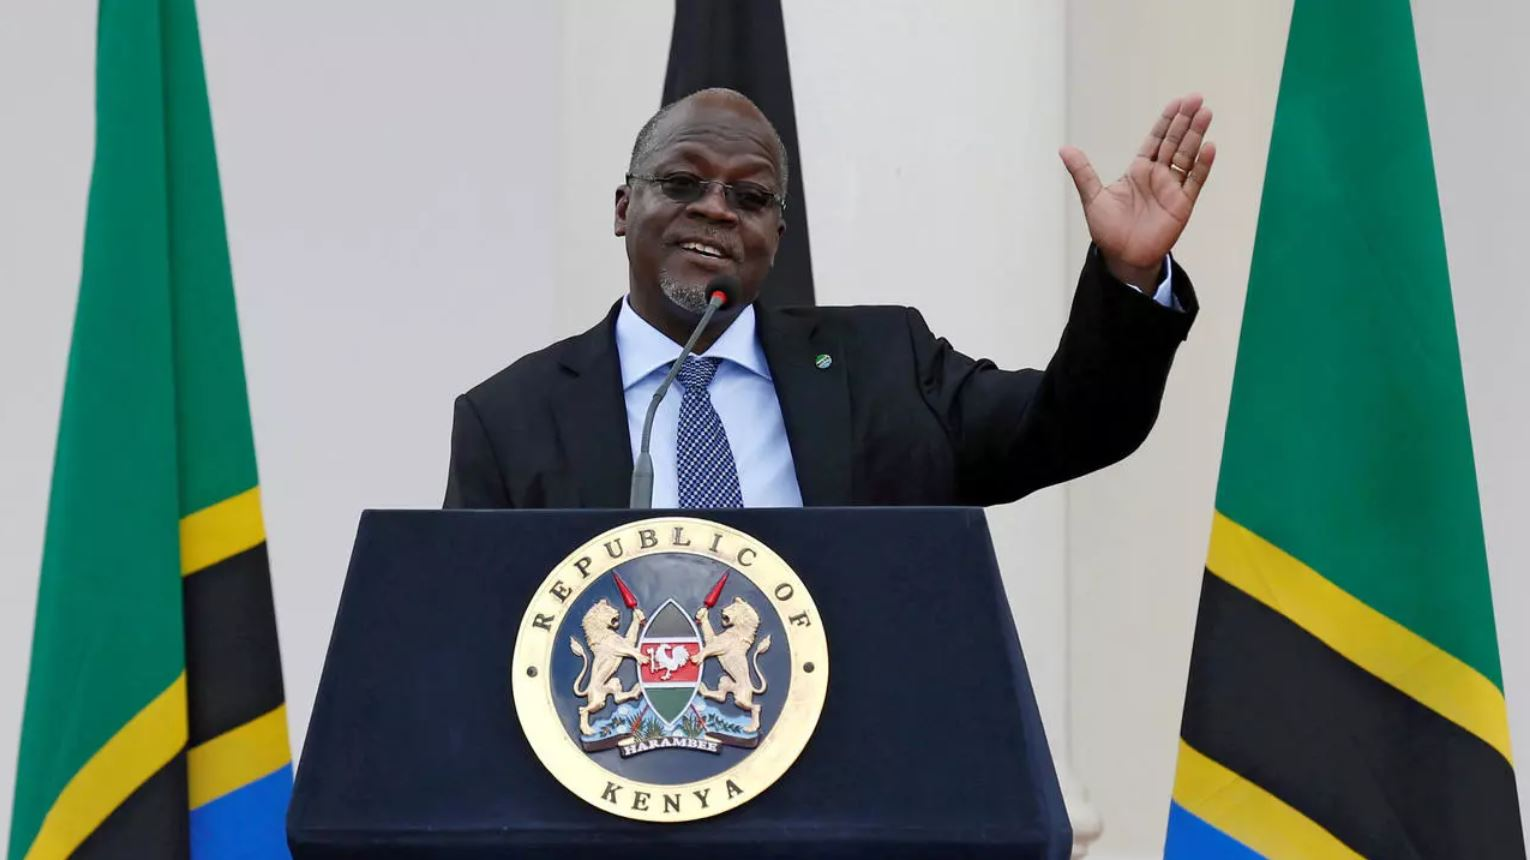 John Magufuli Net Worth, Personal and Political Life